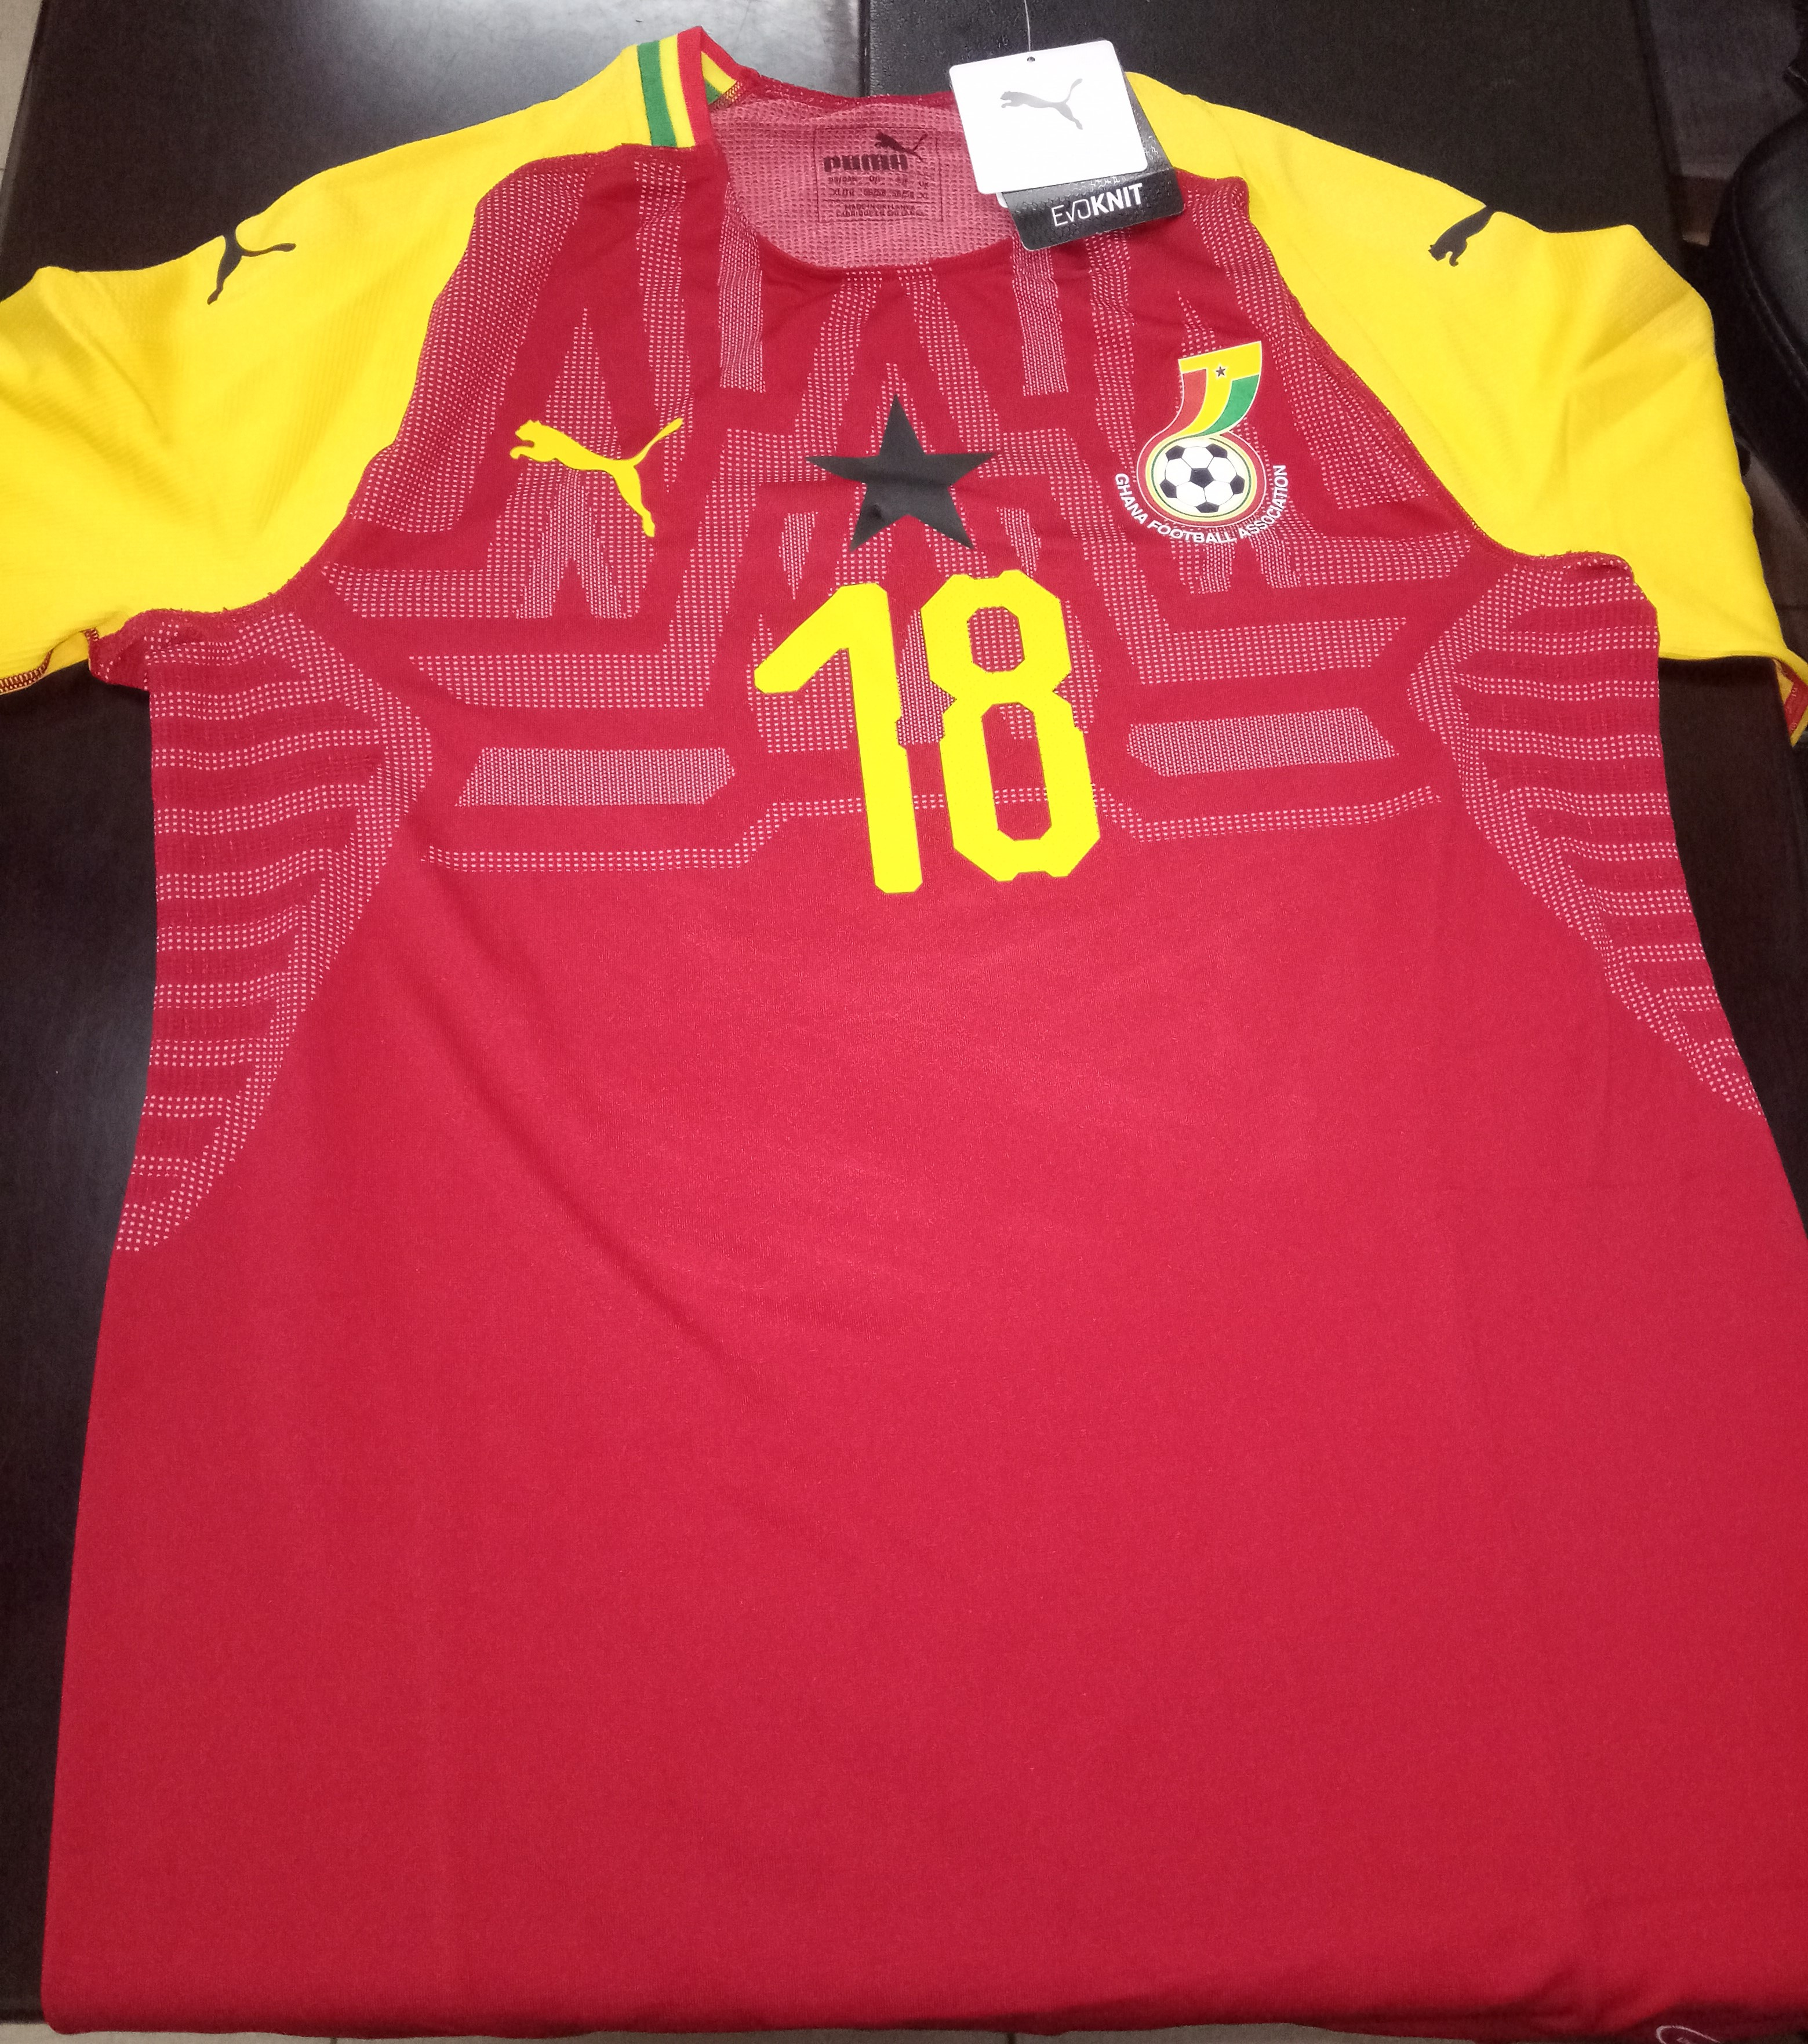 Black Satellites to outdoor new Ghana jersey in AYC qualifier against Algeria on Friday